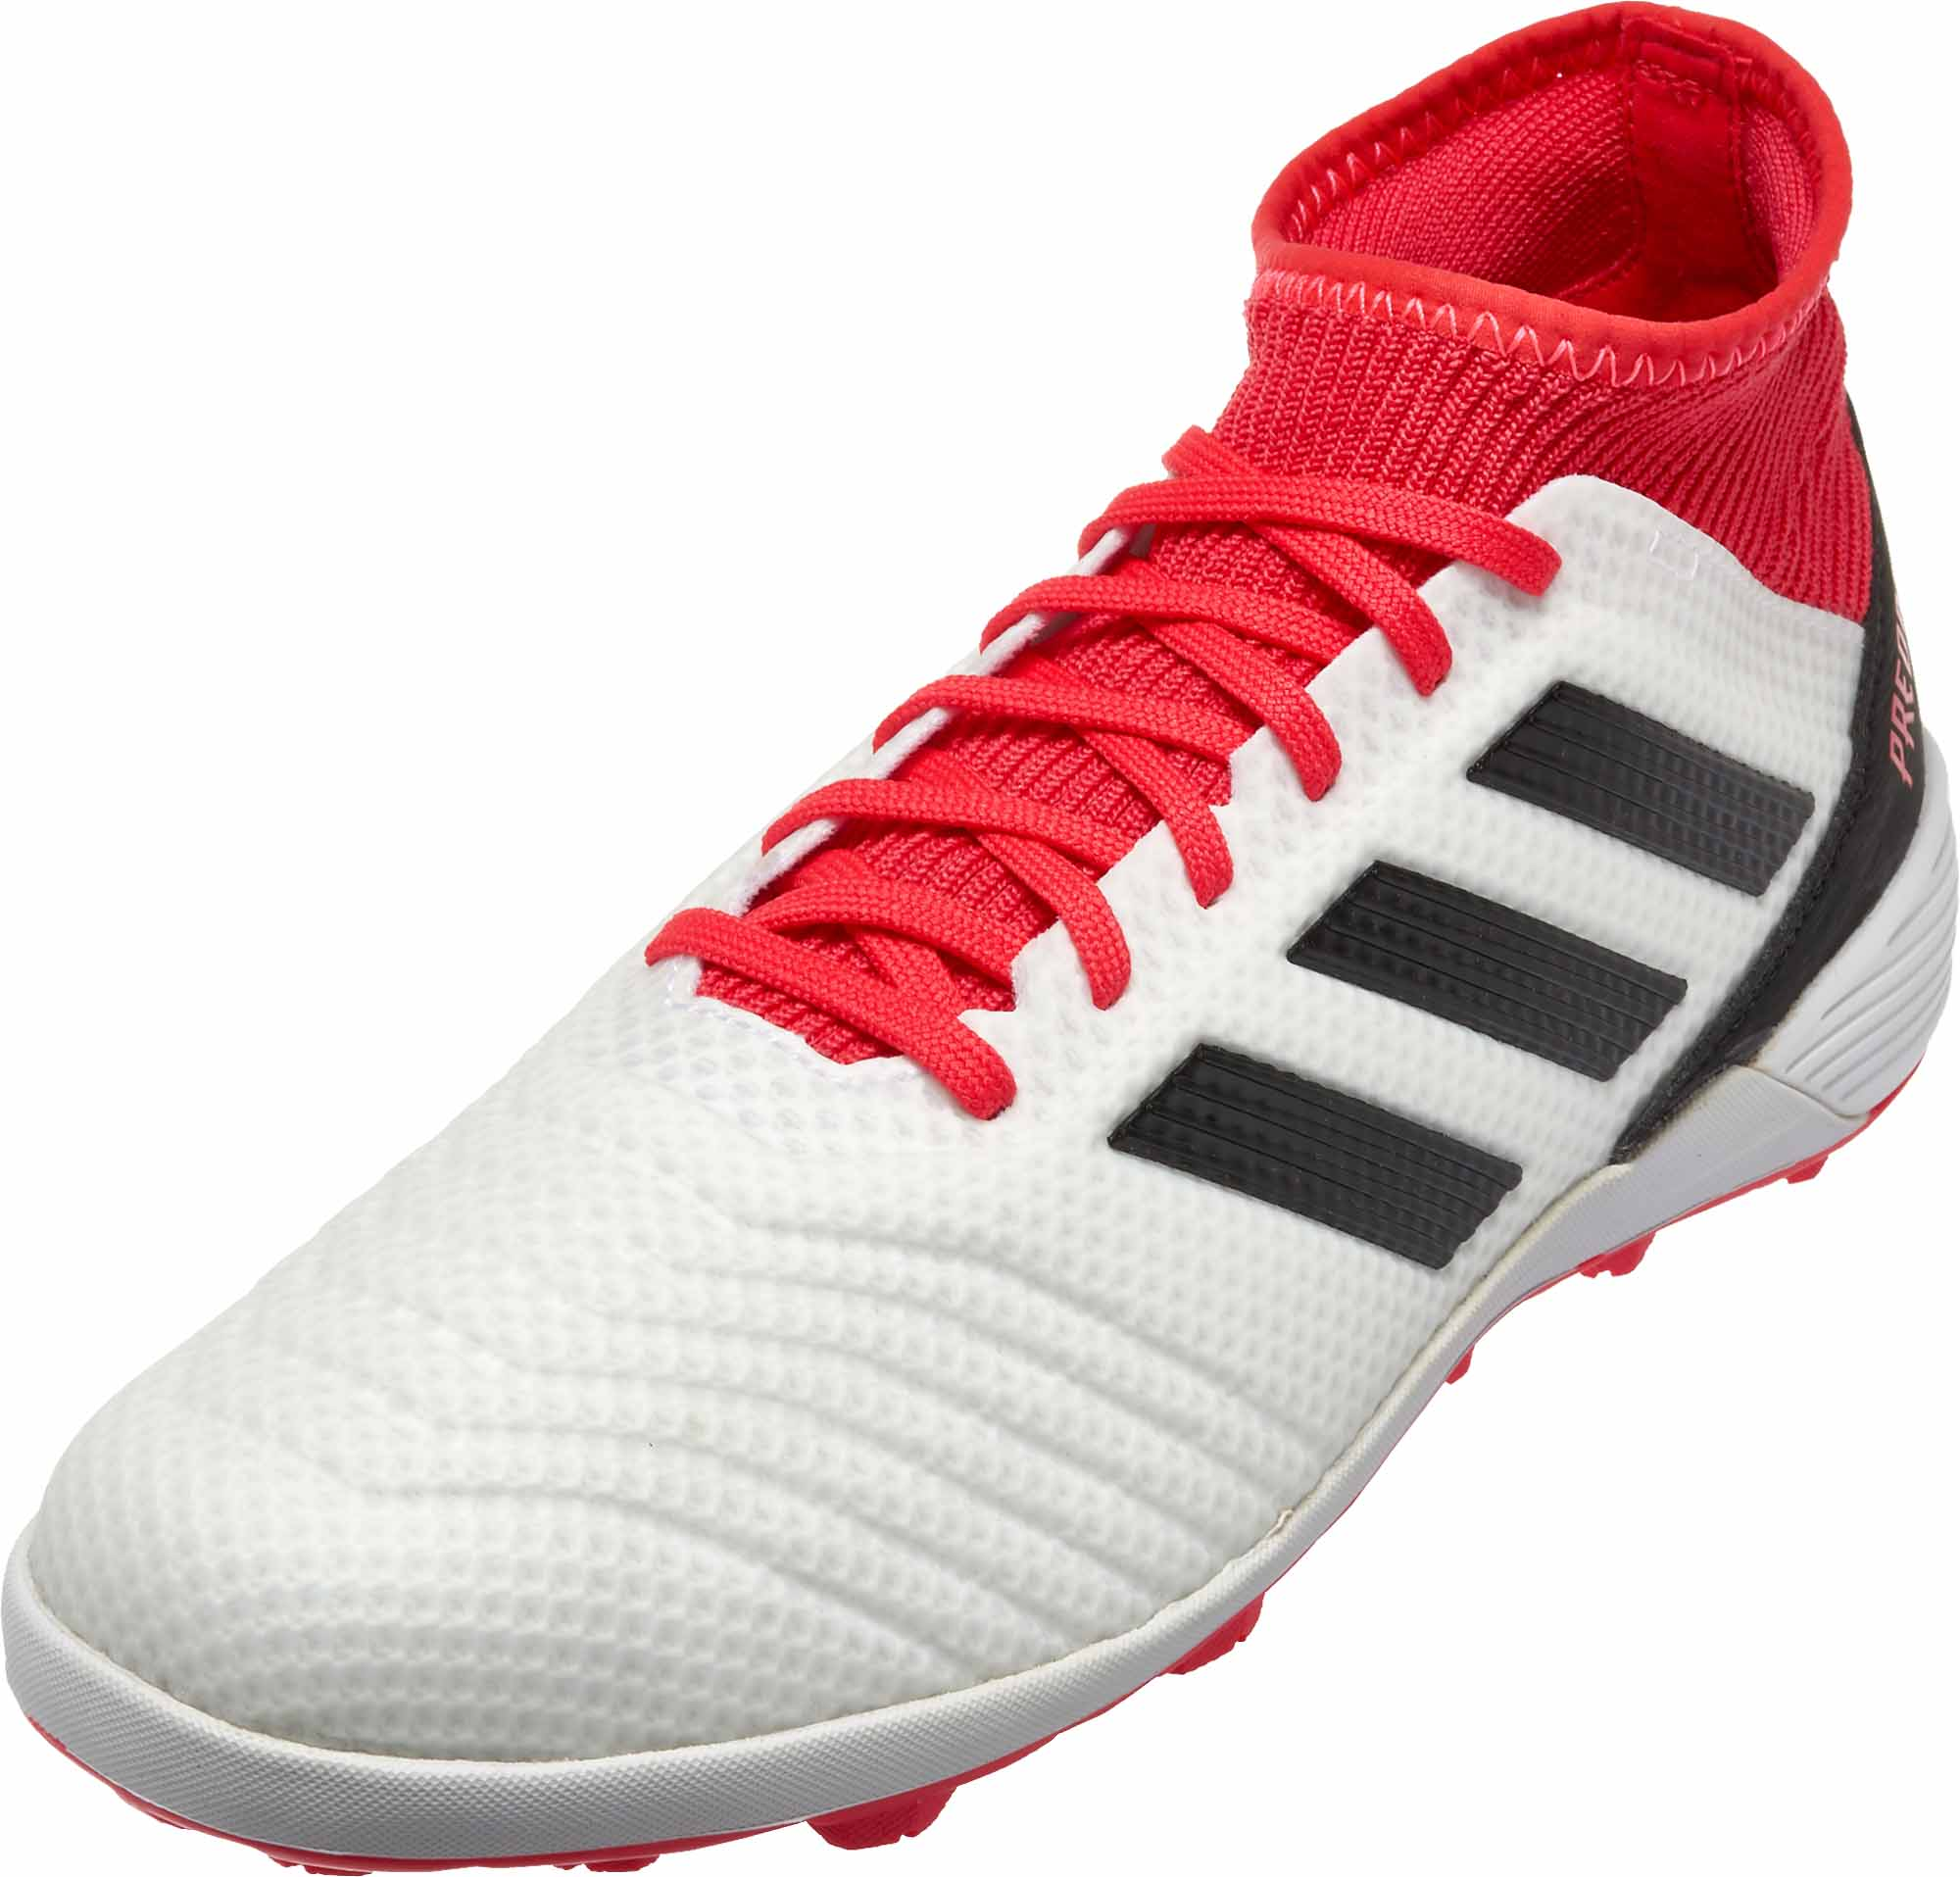 buy popular 21399 2195c adidas Predator Tango 18.3 TF – White   Real Coral